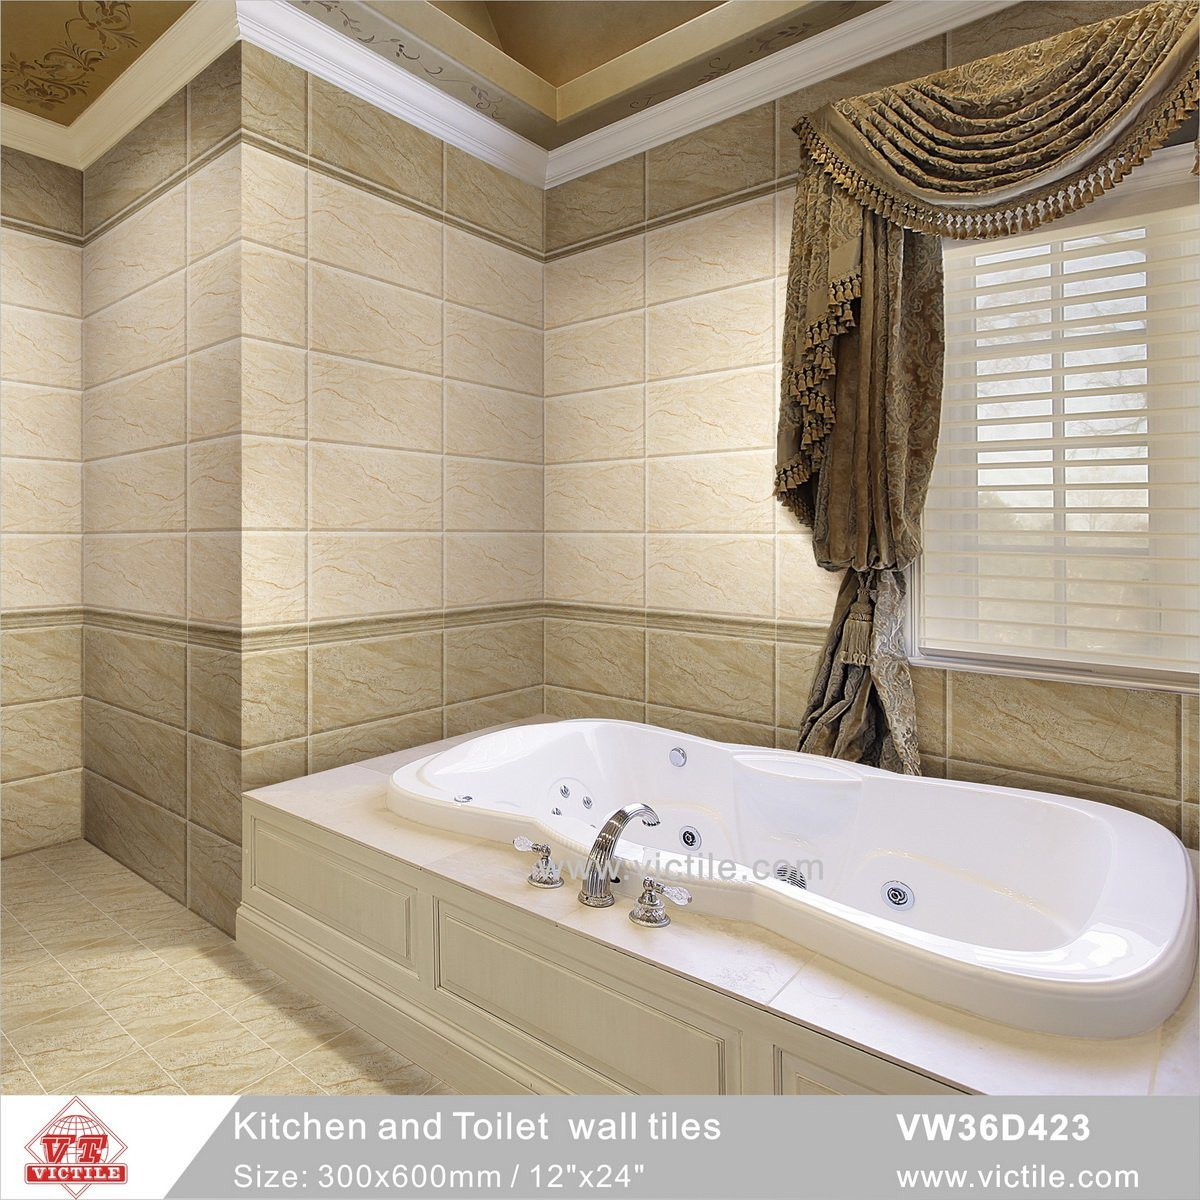 Hot Item Foshan Building Material Ceramic Kitchen Bathroom Wall Tile Vw36d423 300x600mm 12 X24